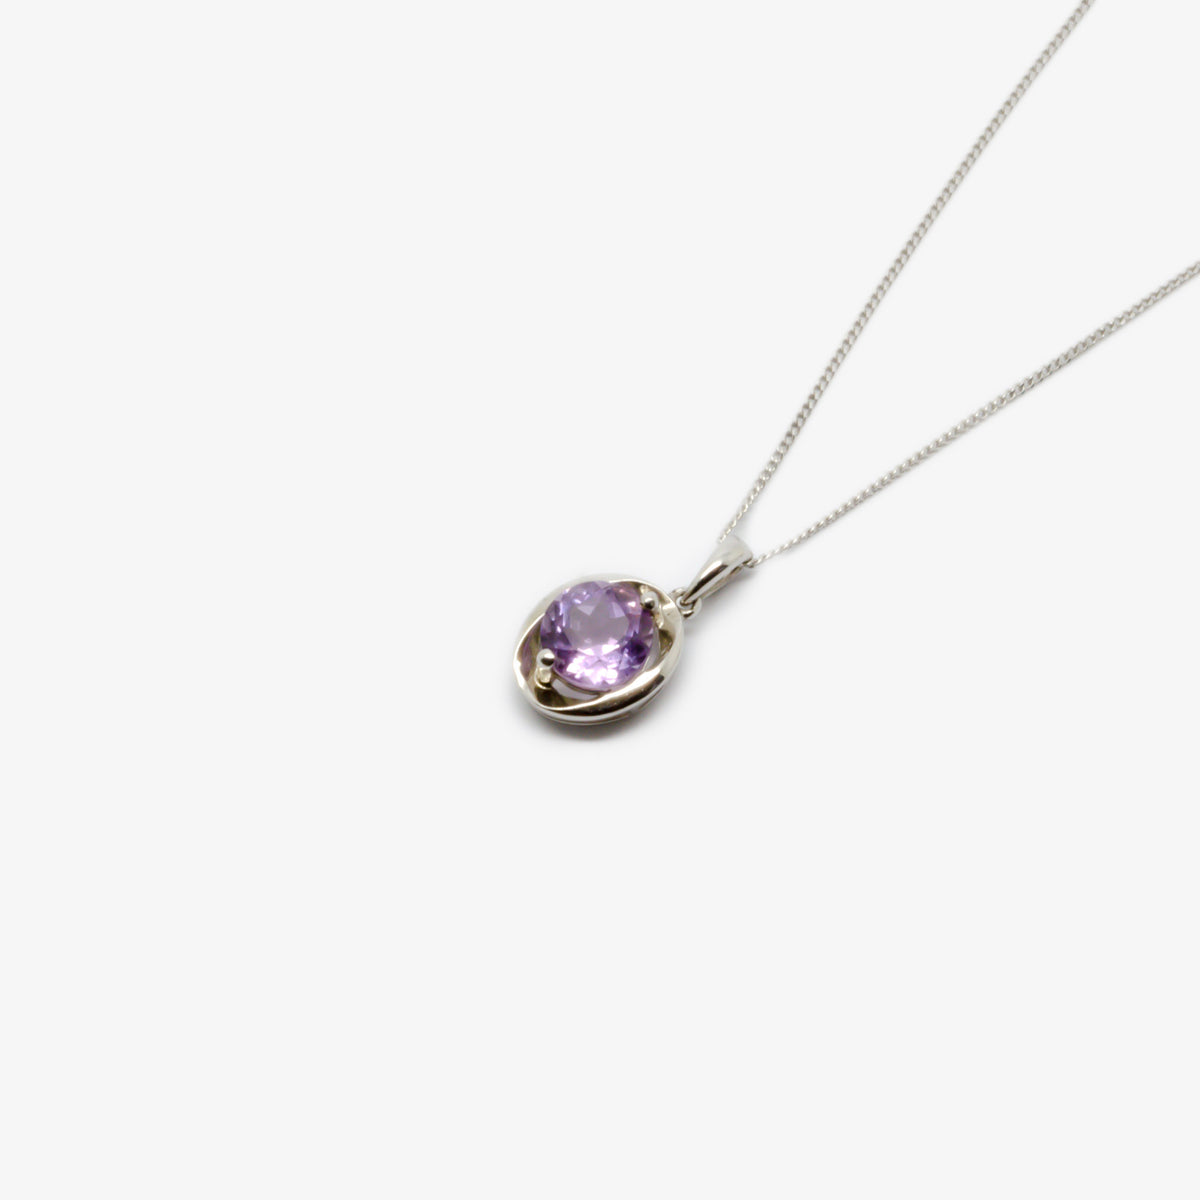 Close-up and from the side picture of the silver amethyst oval pendant necklace.